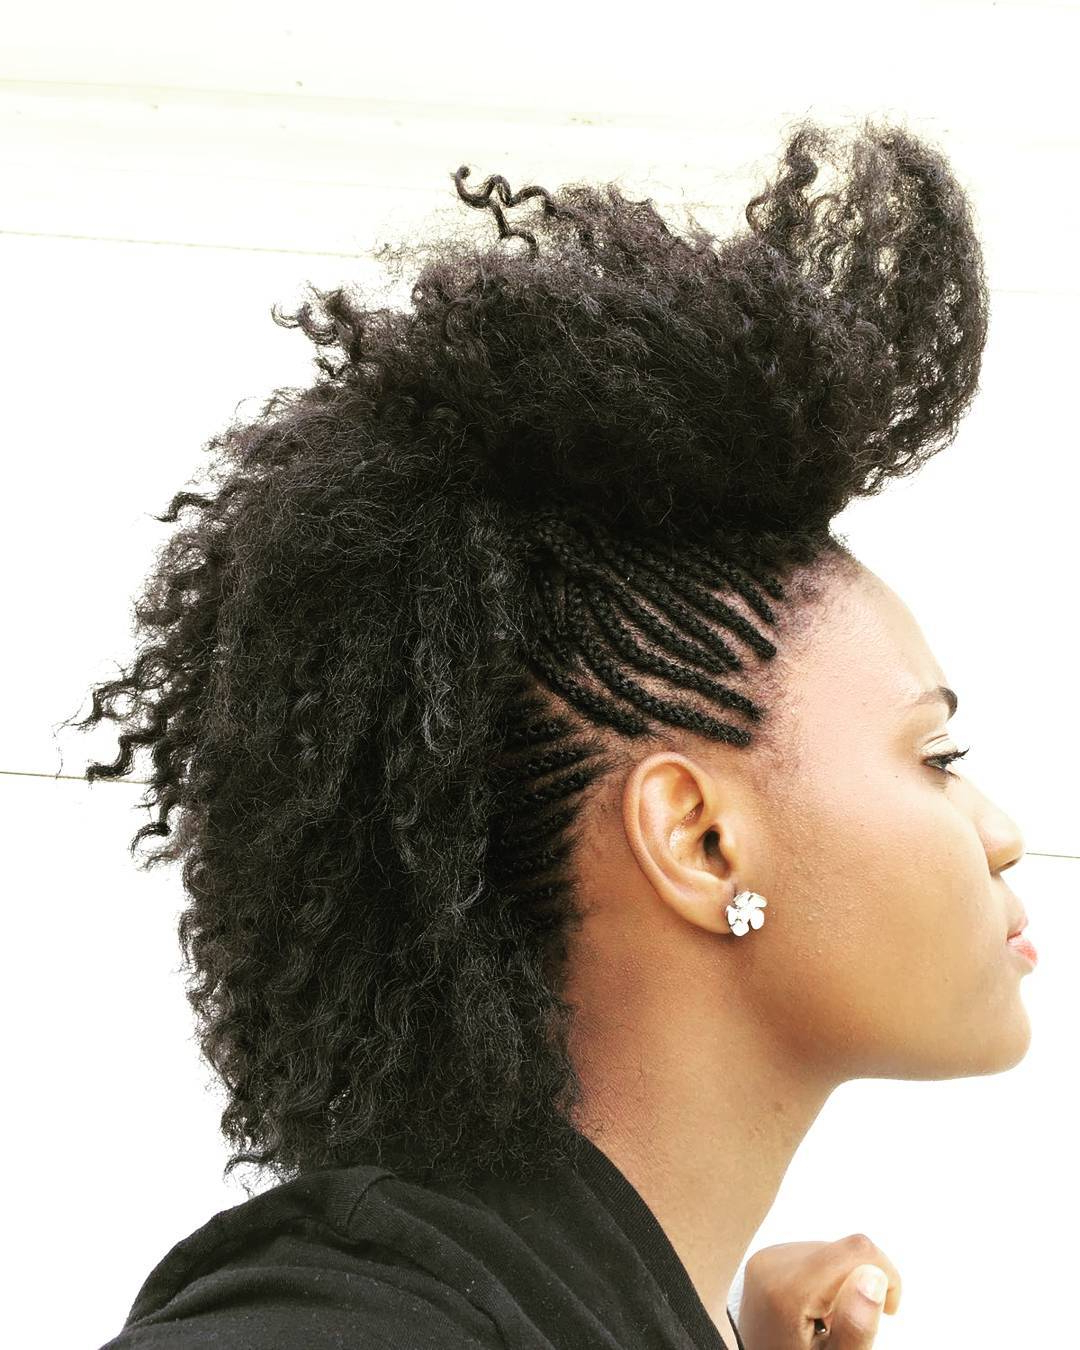 Mohawk Braids: 12 Braided Mohawk Hairstyles That Get Attention Within Best And Newest Braided Bantu Knots Mohawk Hairstyles (View 10 of 20)